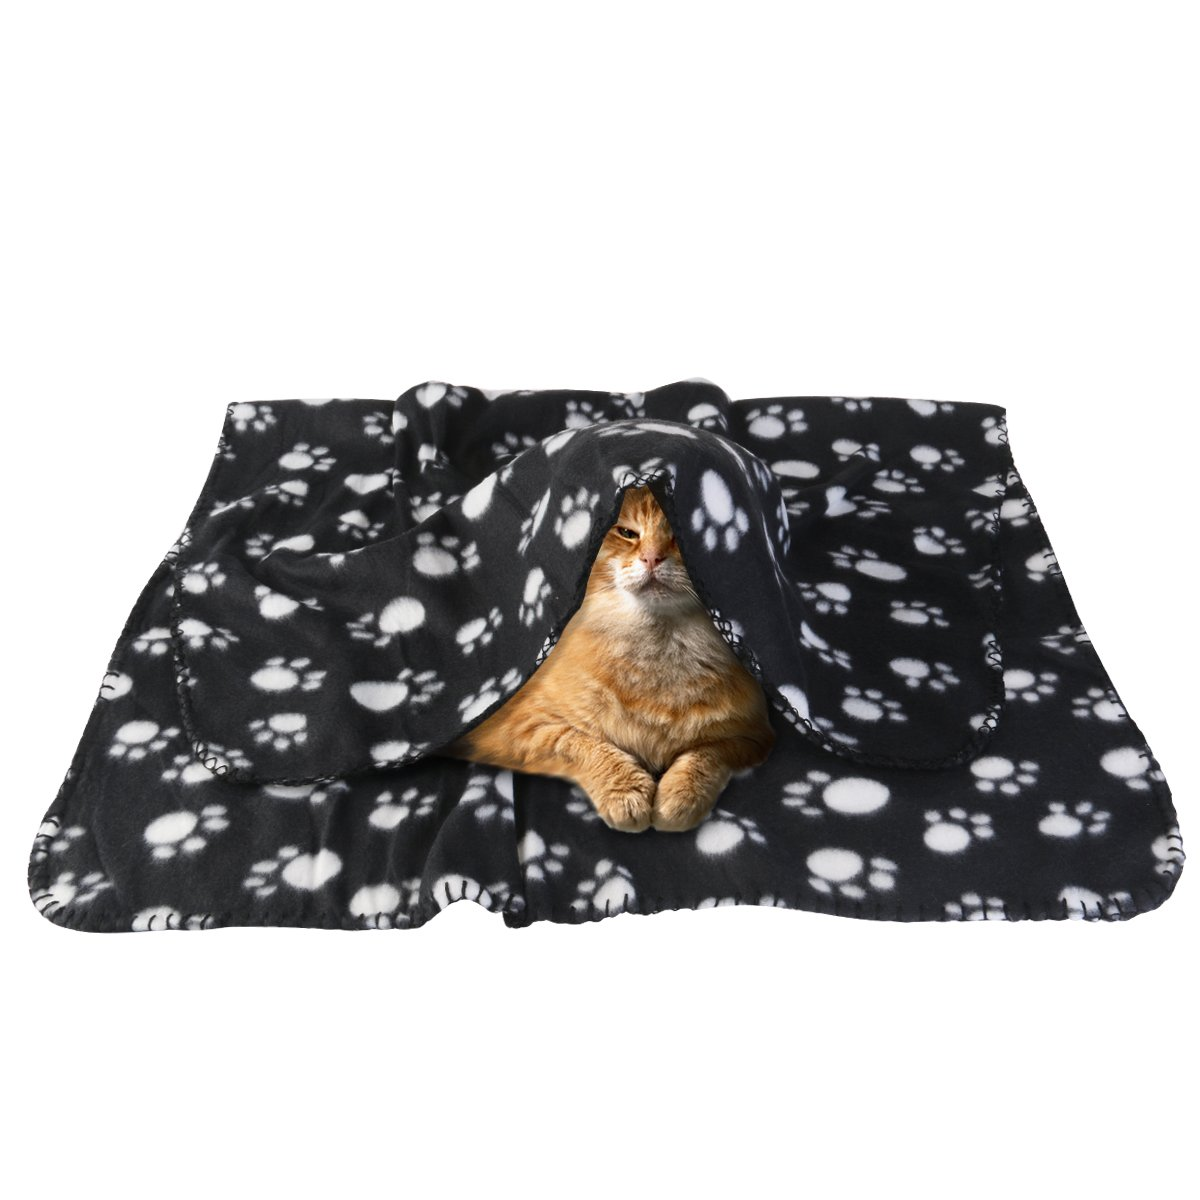 Amazon.com: UEETEK Pet Blanket,Soft Warm Paw Print Fleece Throw Blanket Mat Sleeping Bed Cover for Dog Cat Pets,3927inch(Black): Home & Kitchen